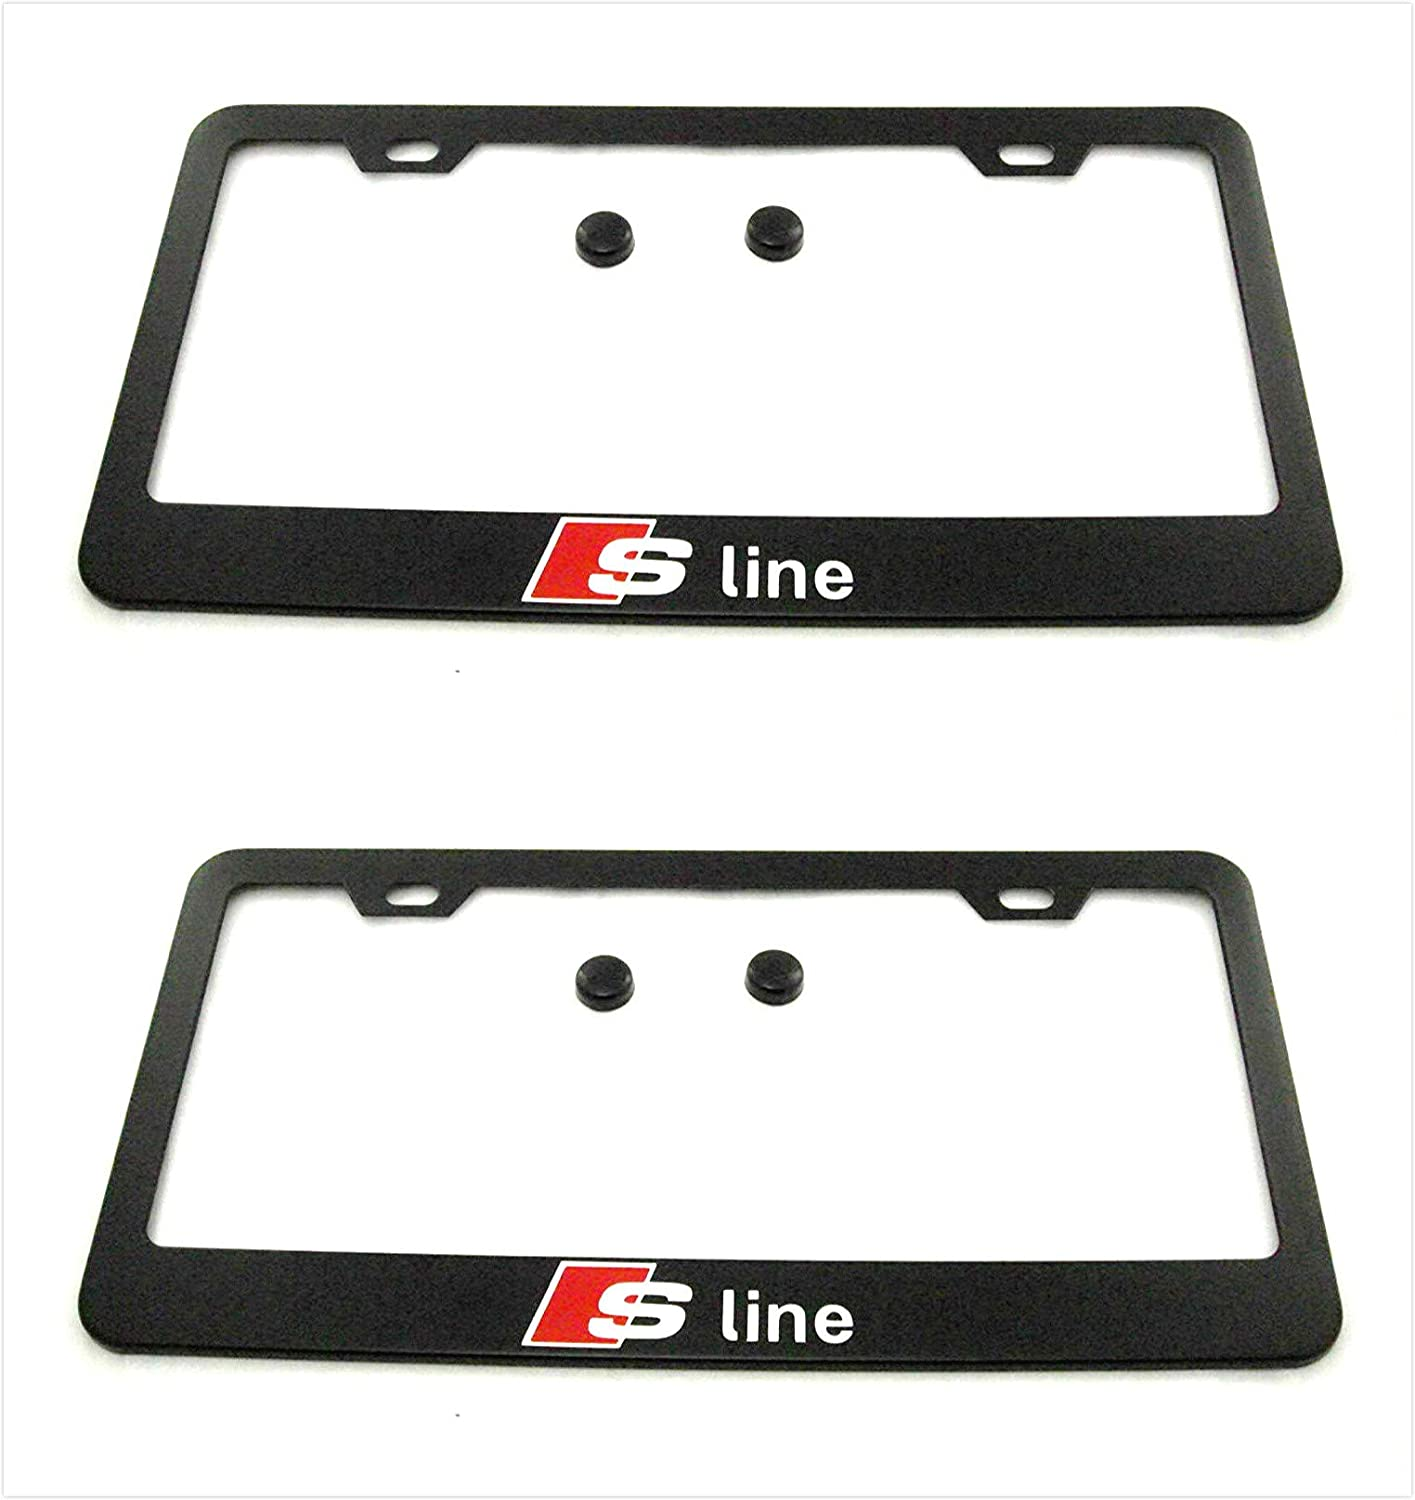 Estodia Black SQ5 Stainless Steel License Plate Frame Cover Holder Metal with Screws Caps for Audi SQ5 Universal 2